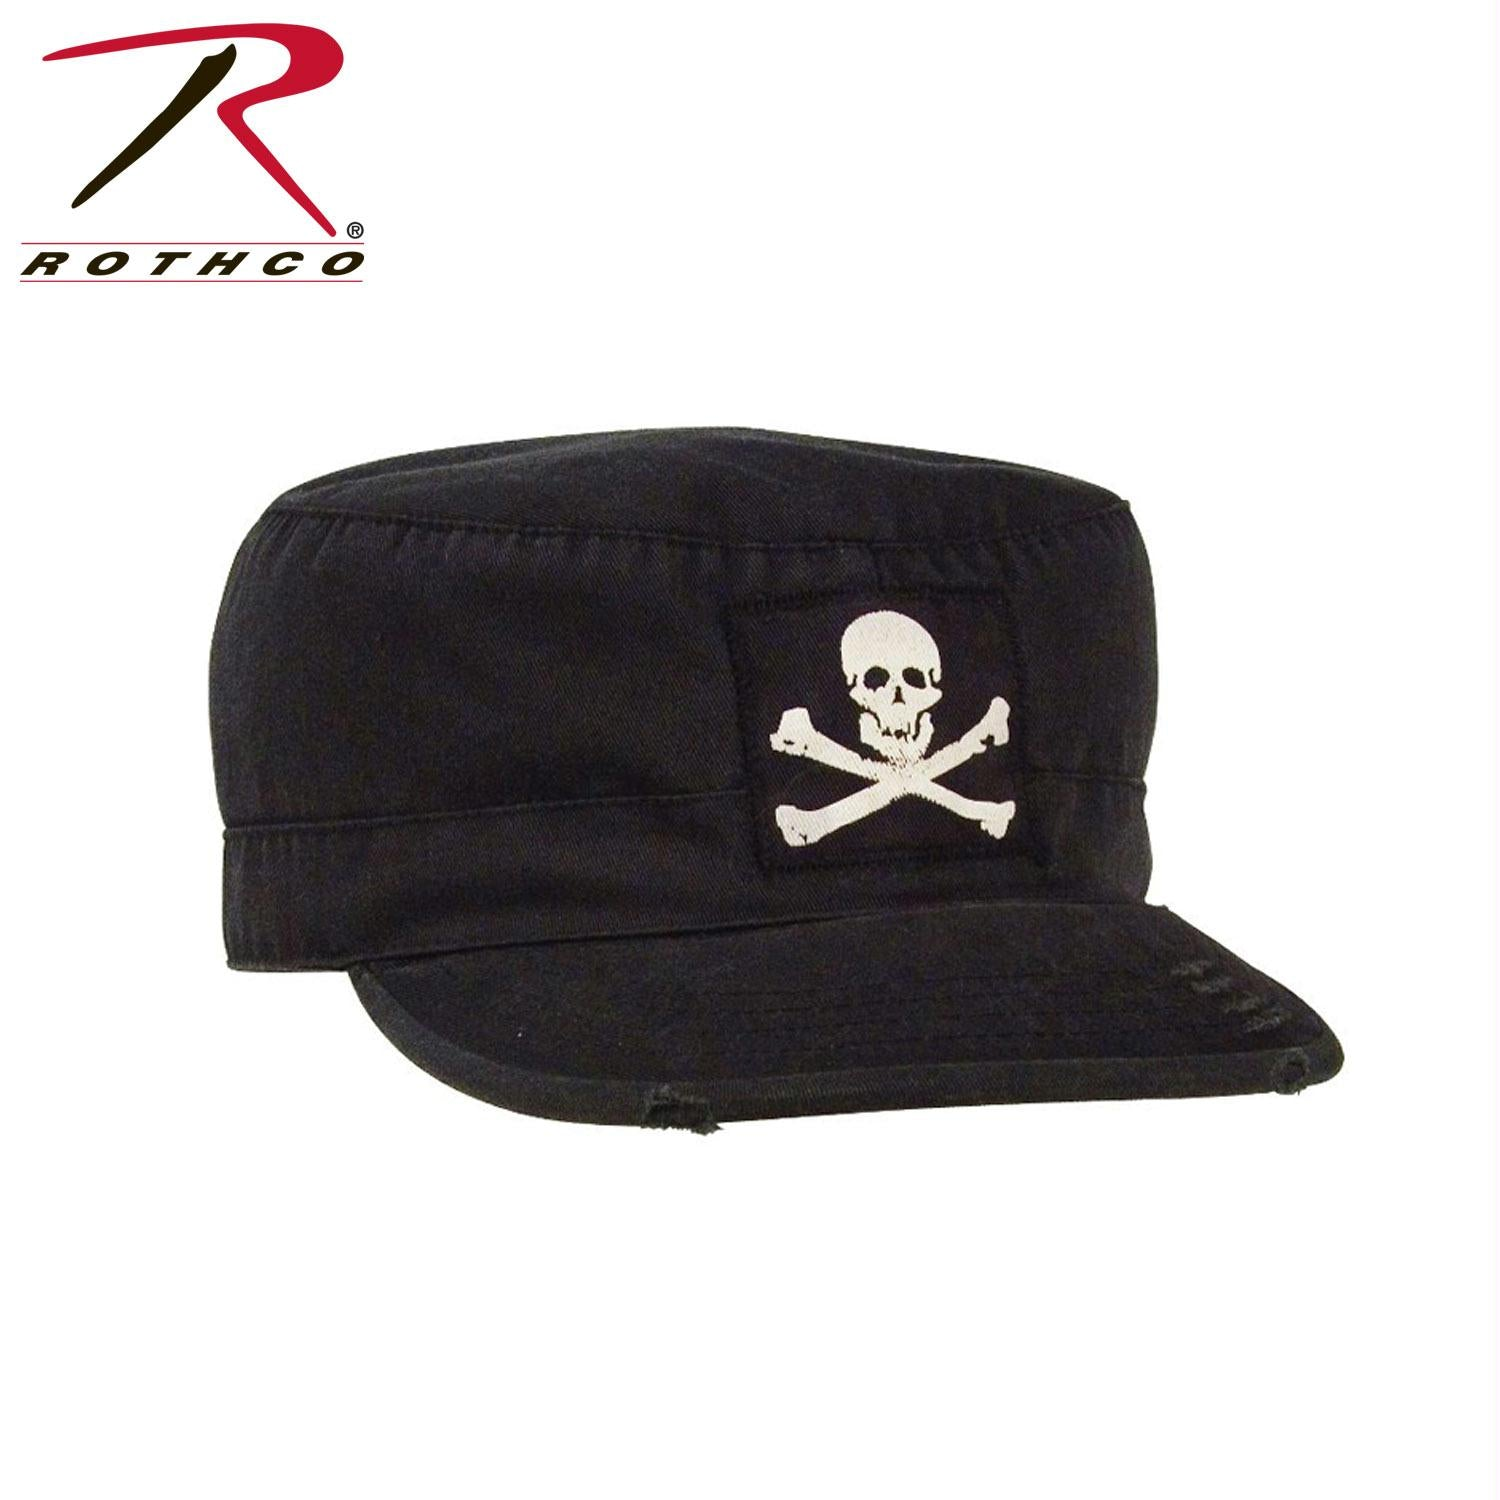 Rothco Vintage Military Fatigue Cap With Jolly Roger - XL